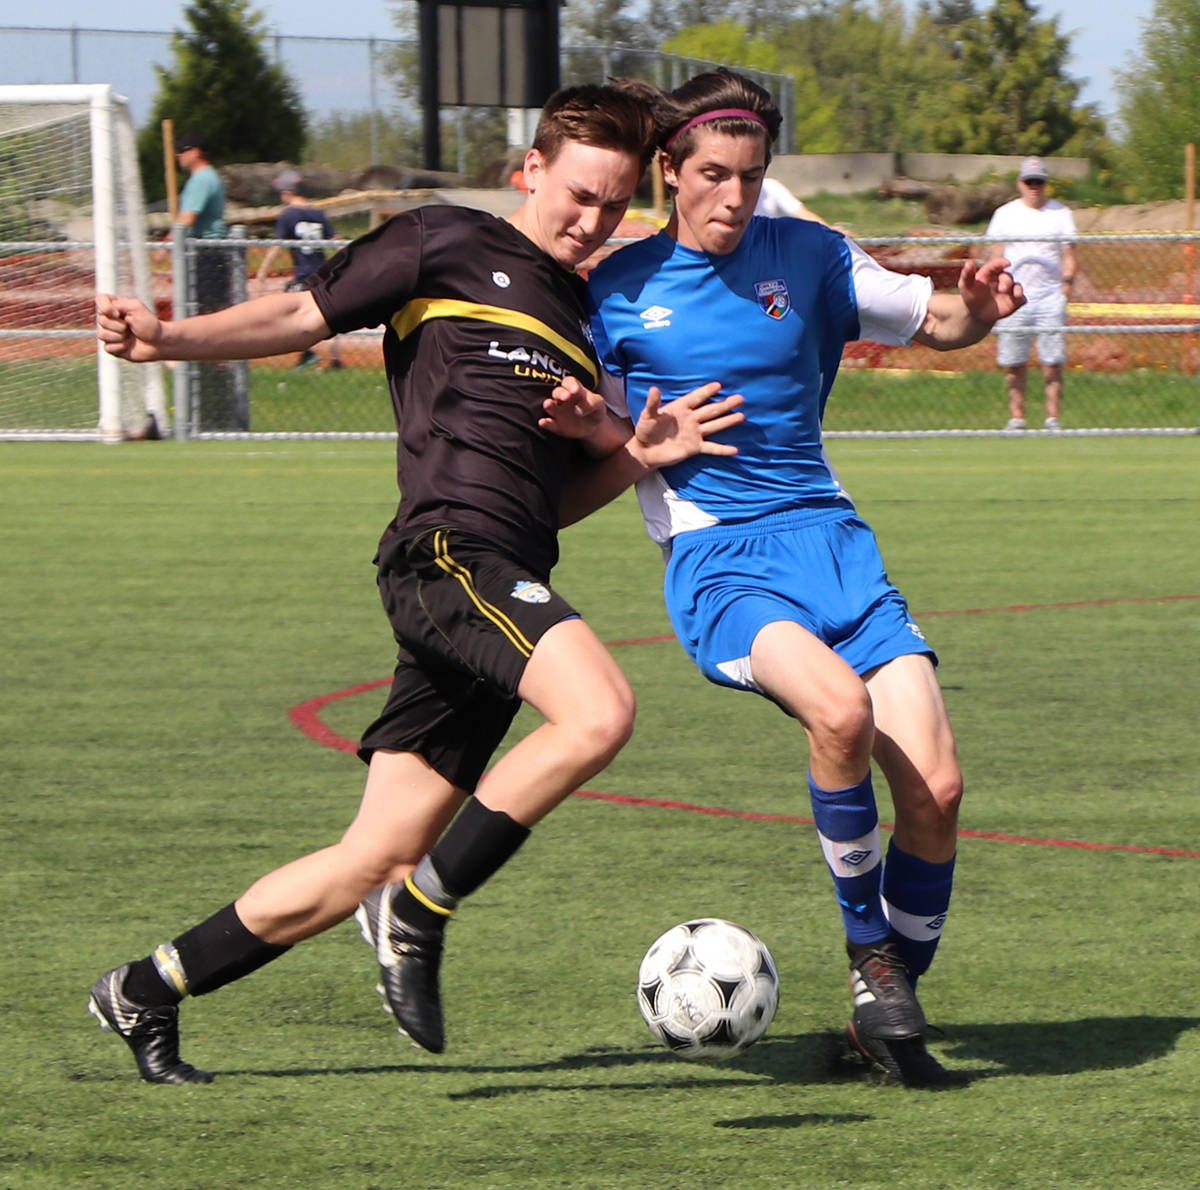 ART BANDENIEKS PHOTO Langley United U15 boys defeated Delta's DCS boys 3:0 in BC Coastal Cup soccer action over the weekend at Aldergrove Athletic Park.